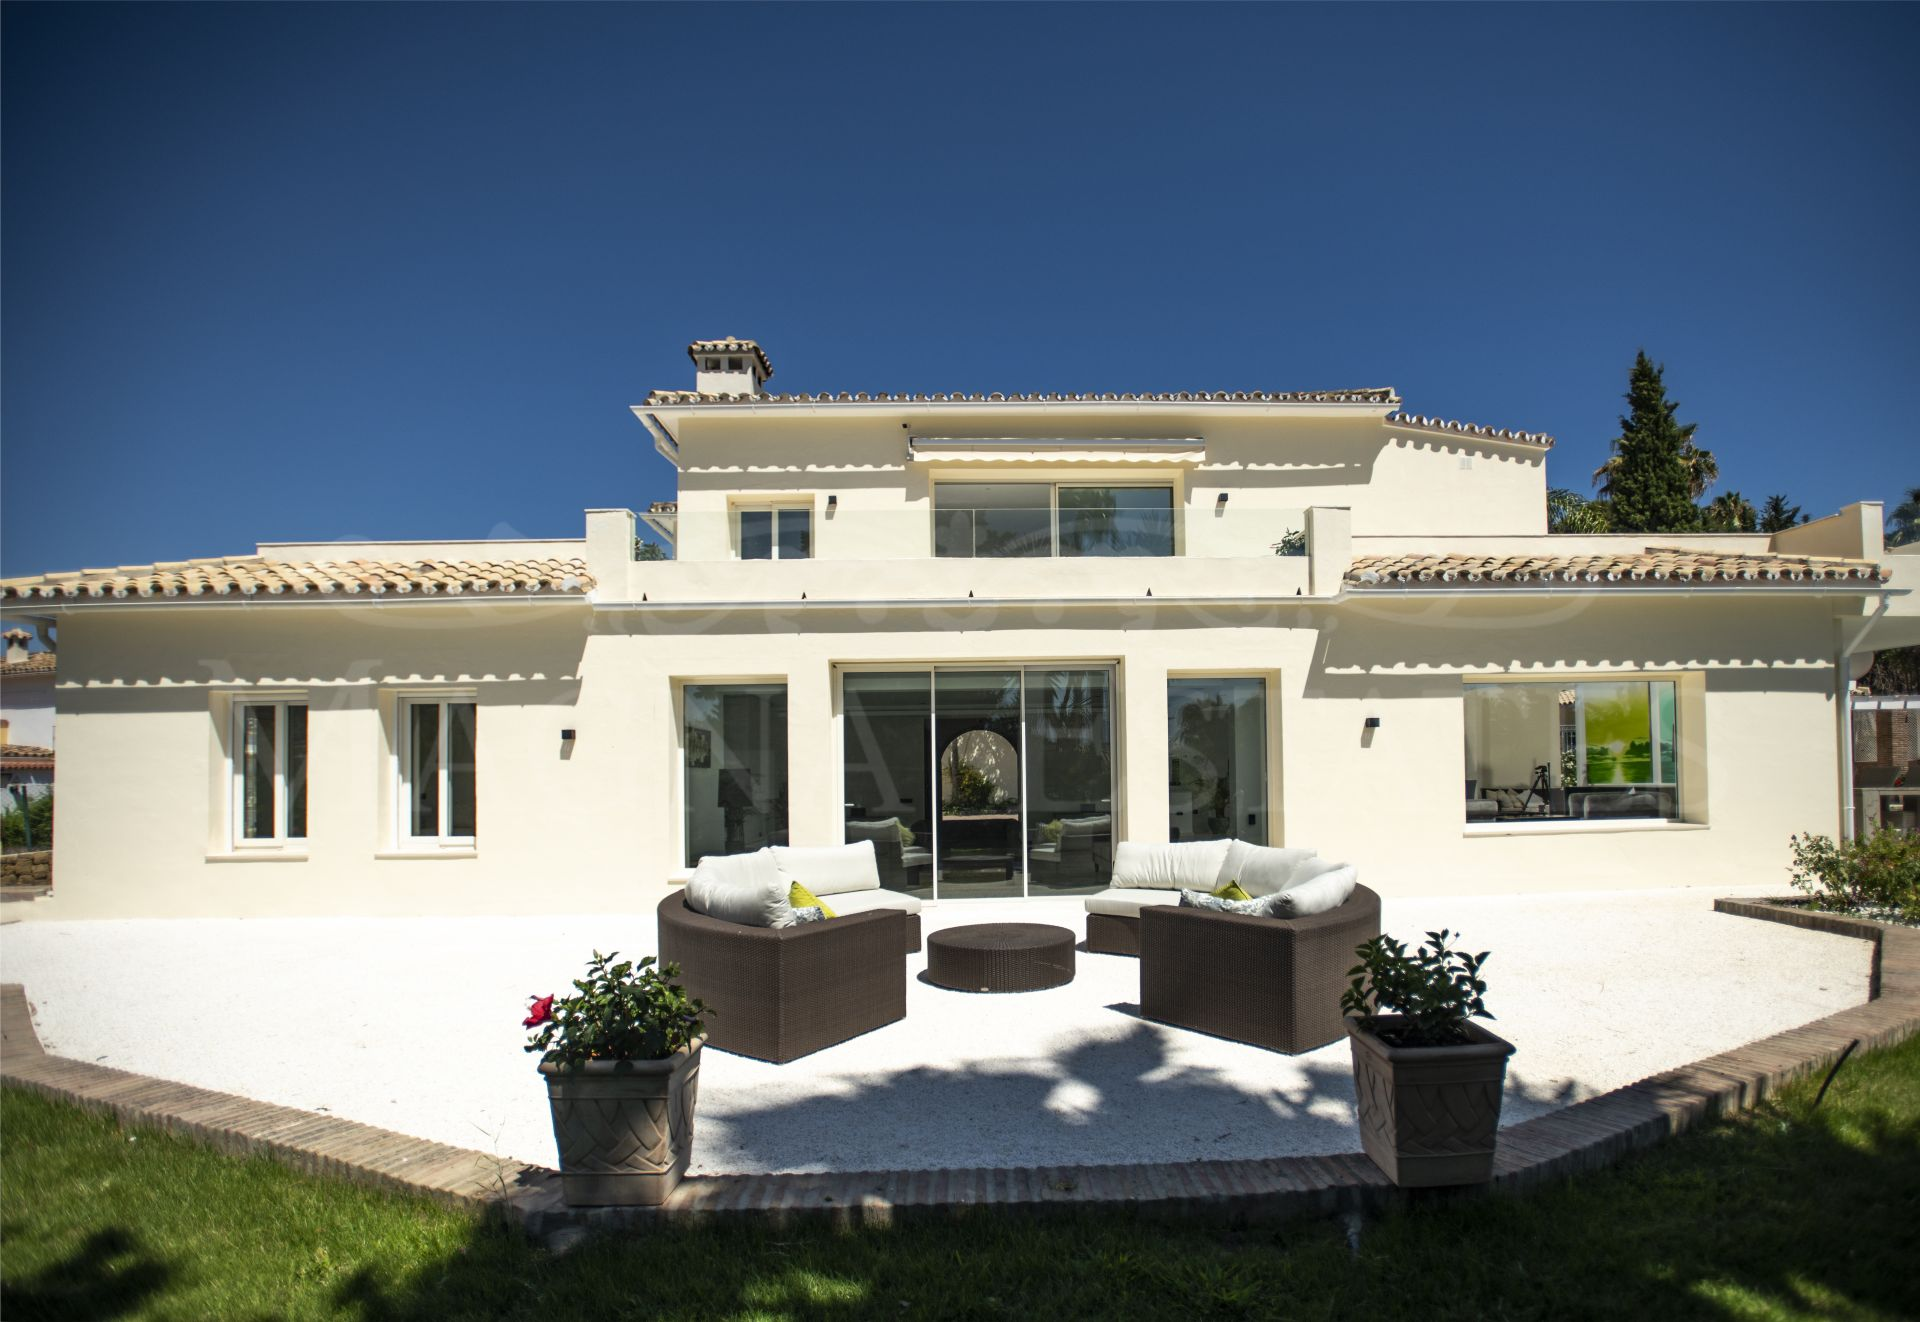 Spectacular villa completely renovated andalusian style in El Paraíso, Estepona